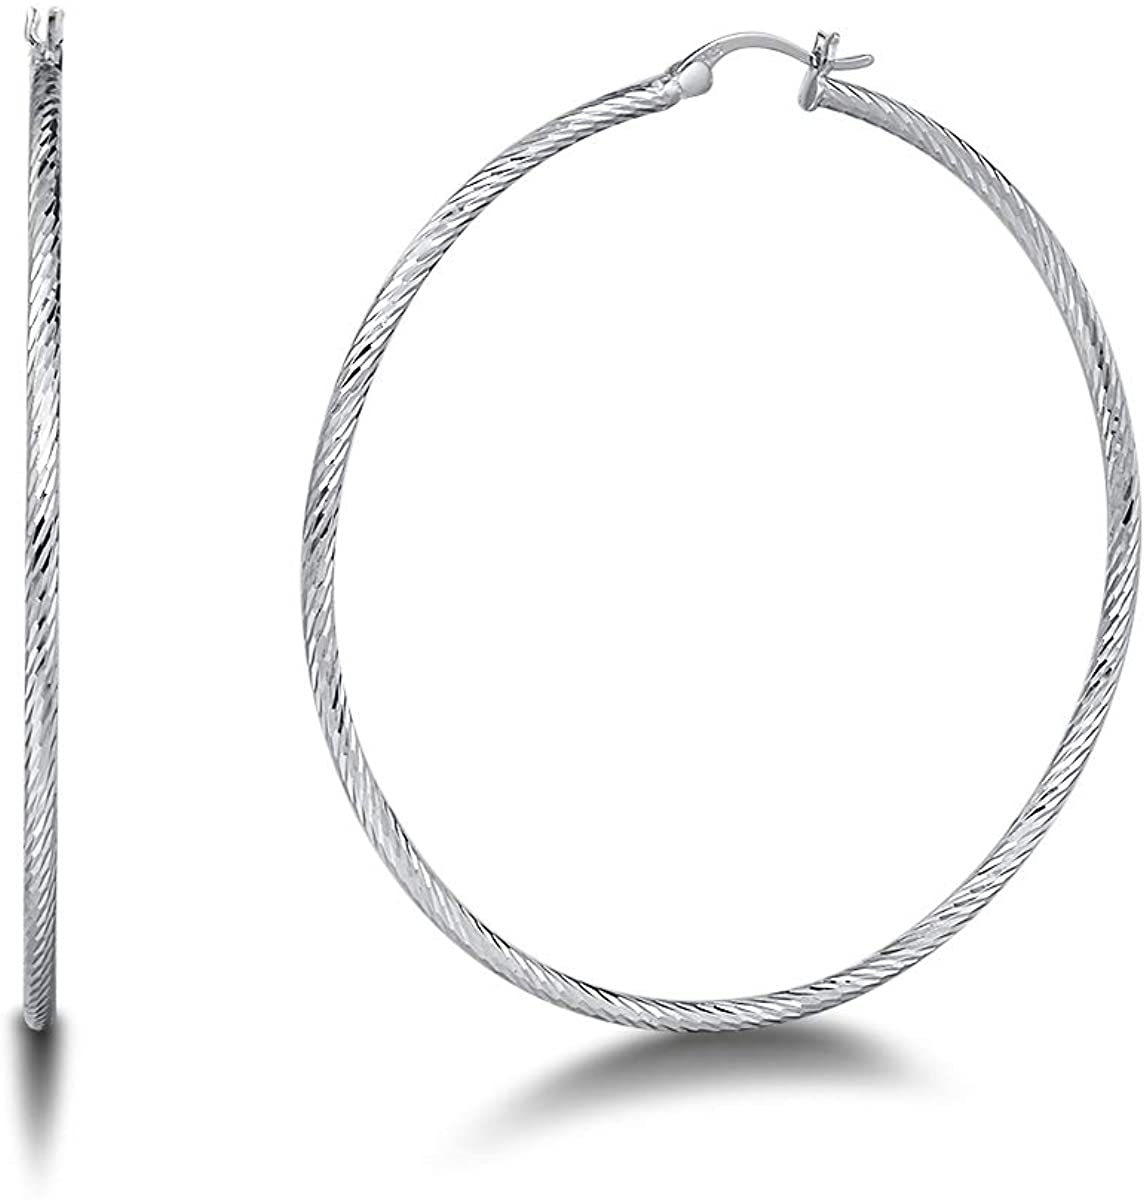 FANCIME White Gold Plated 925 Sterling Silver Extra Large/Big Diamond Cut Lightweight Click-Top Hoop Earrings Jewelry For Women Girls, 40 50 60 mm